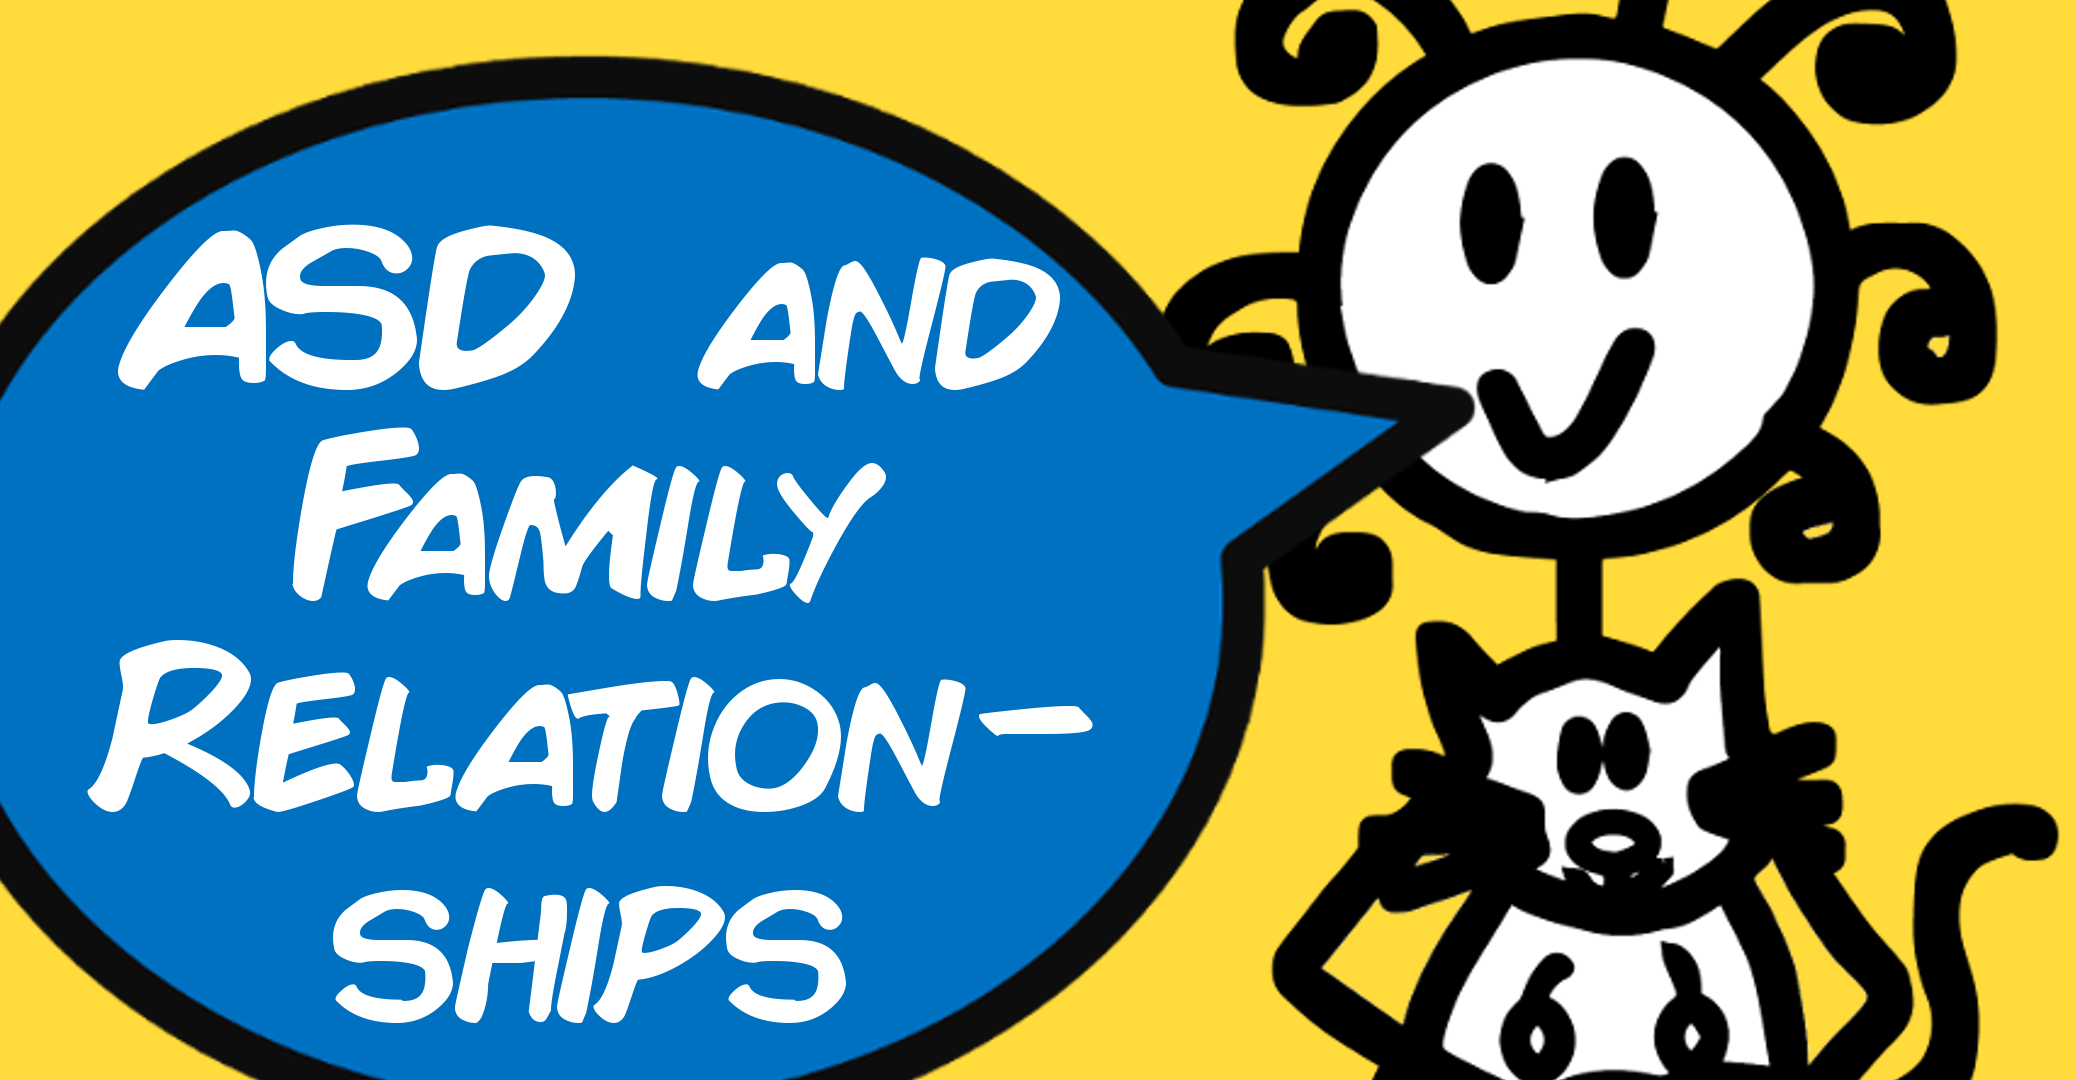 ASD and Family Relationships - The Curly Hair